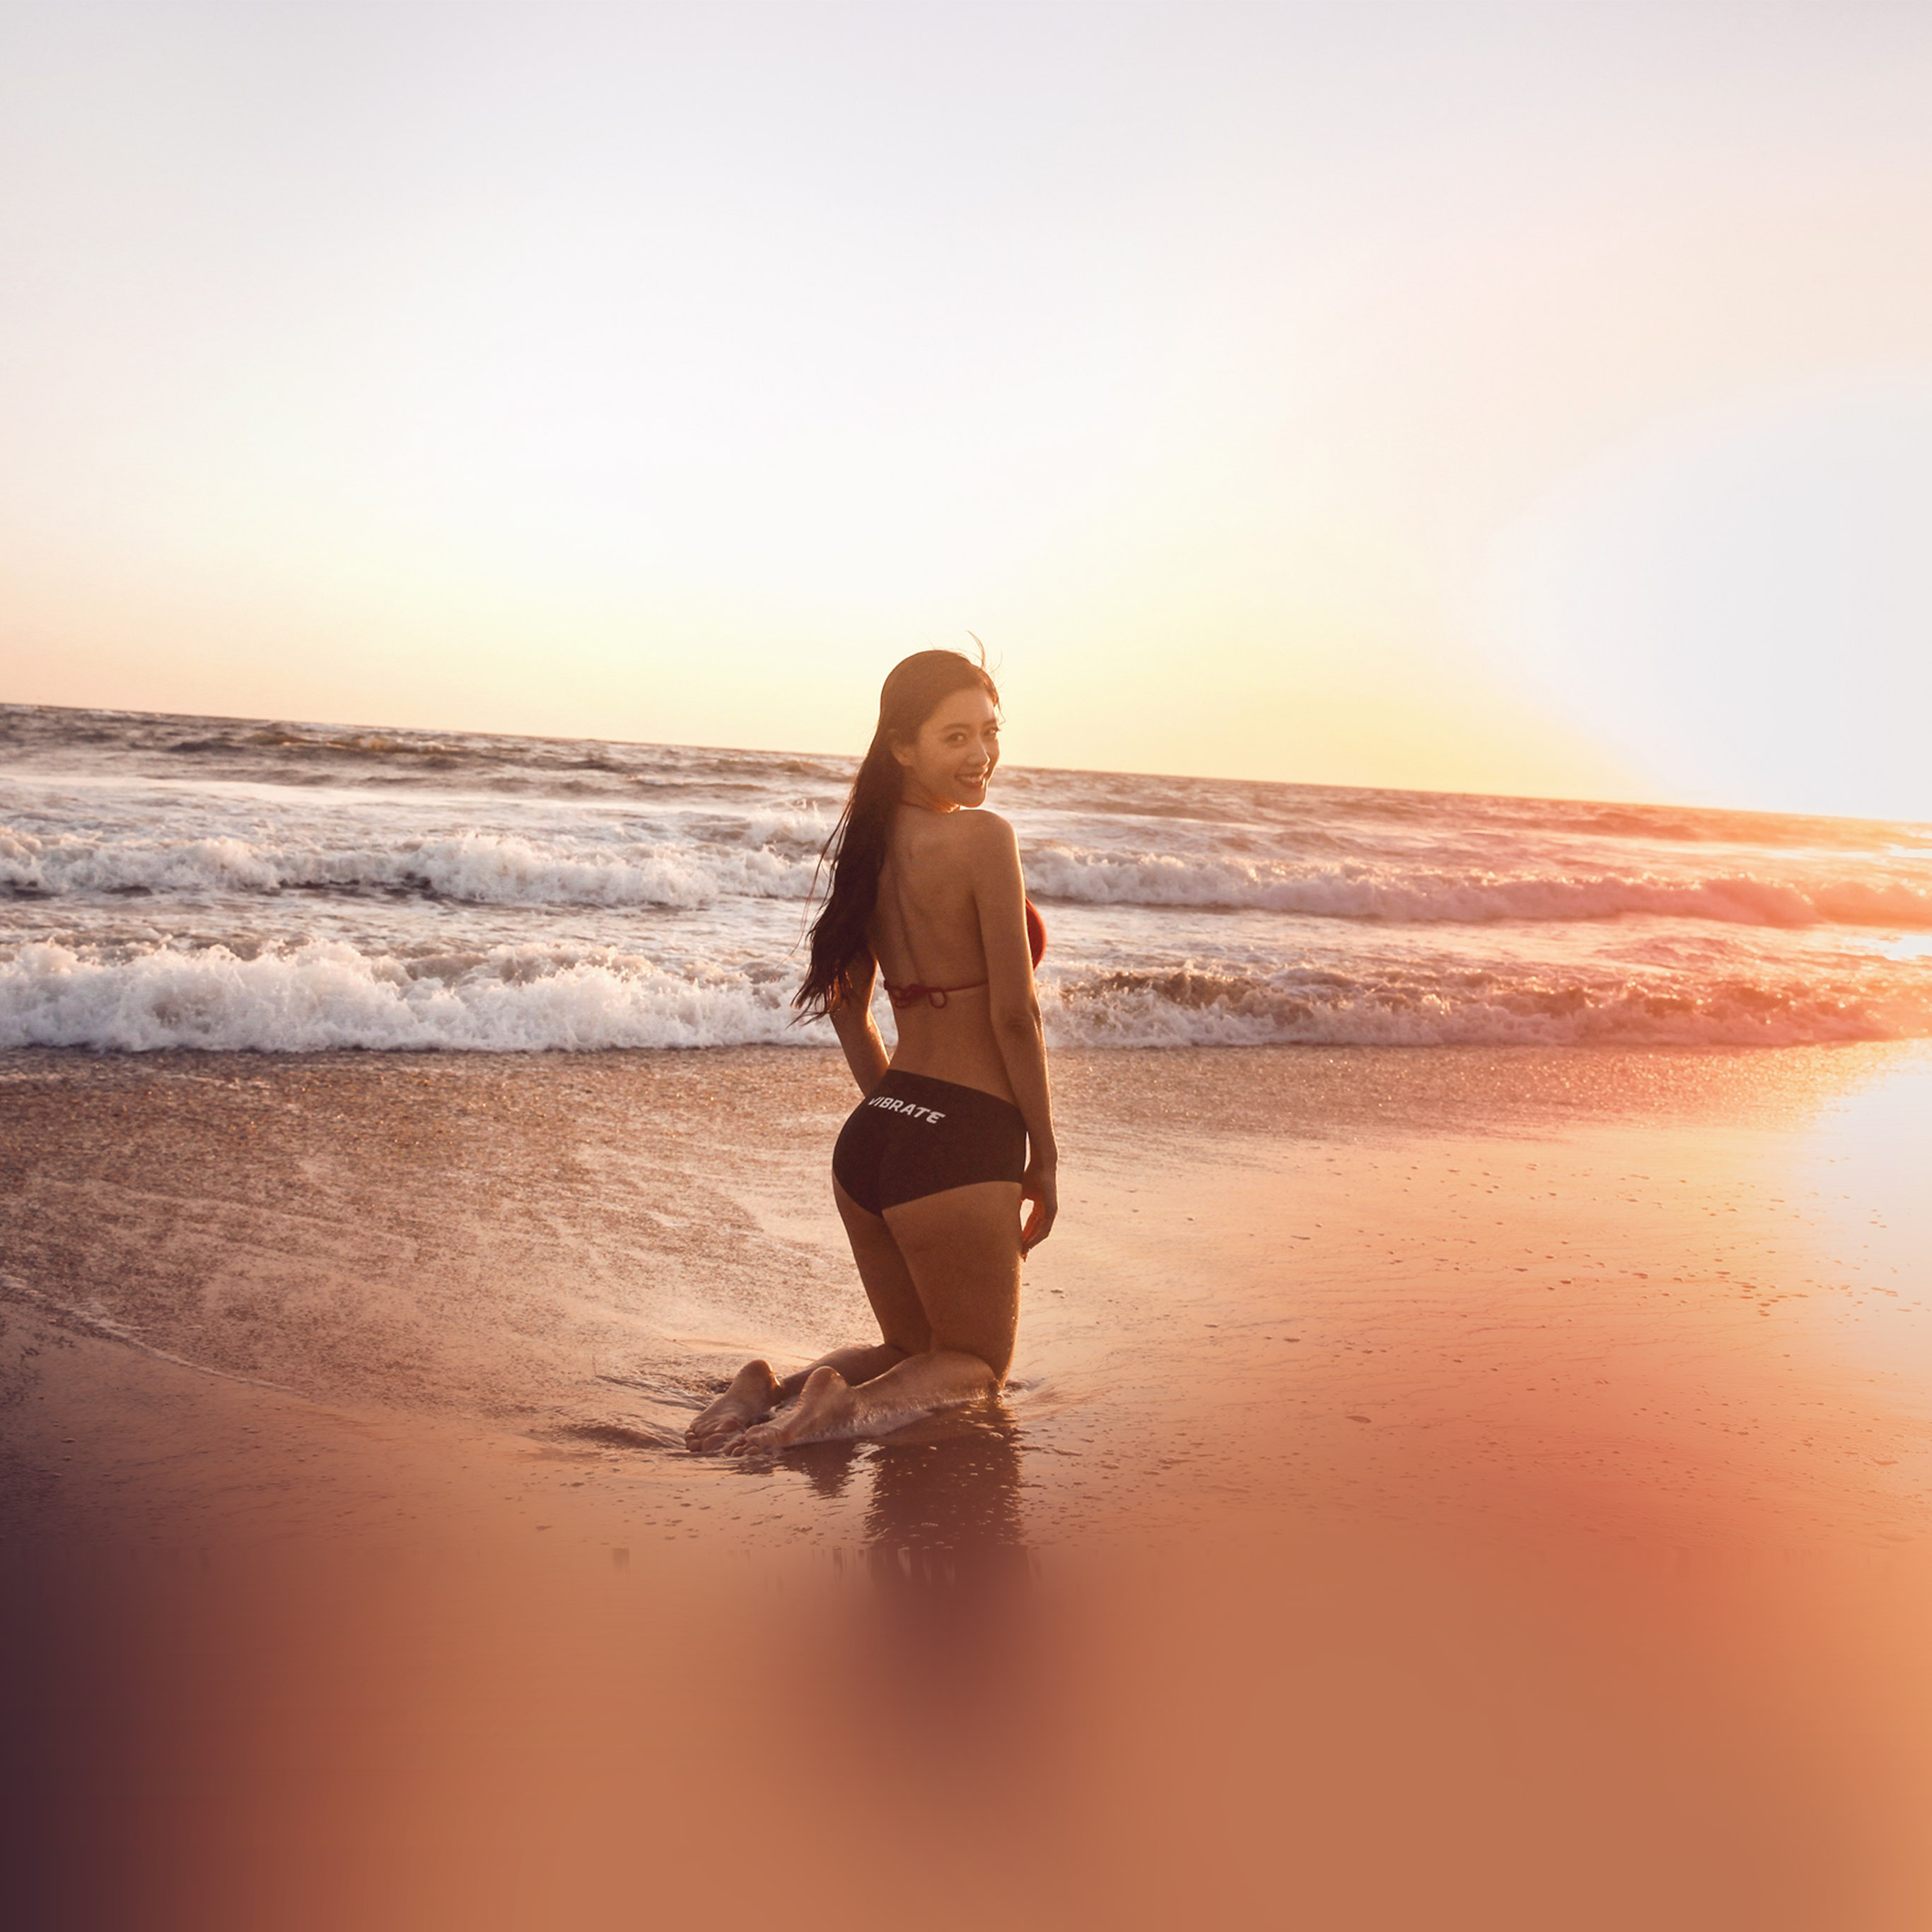 Cute Girly Summer Wallpapers Papers Co Android Wallpaper Hn33 Beach Girl Sunset